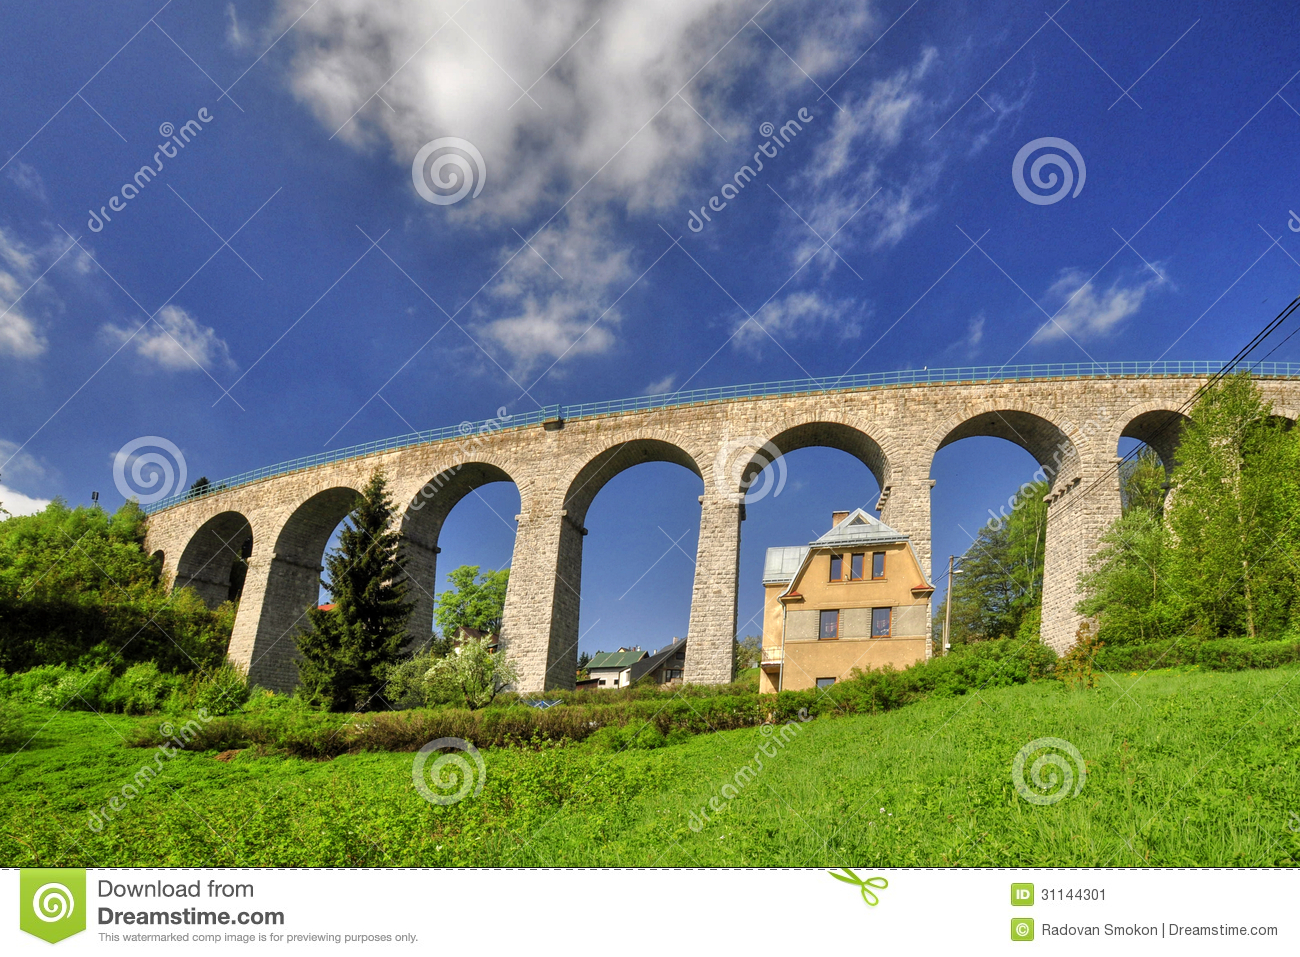 Download Railway viaduct stock image. Image of building, smrzovka - 31144301